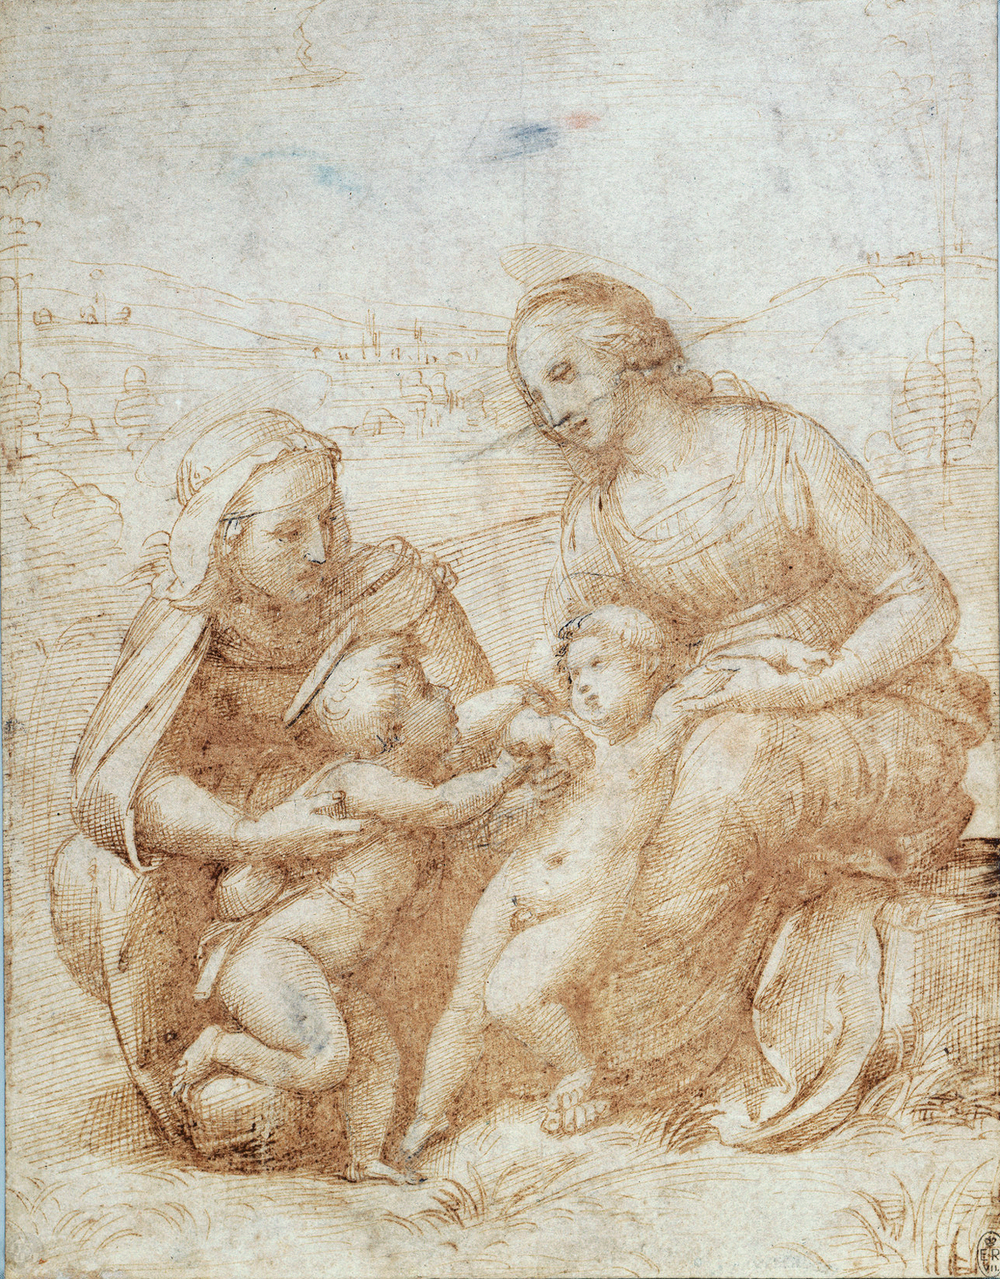 "The Virgin and Child with St Elizabeth and the Infant St John  c.1506 23.4 x 18.0 cm     "" Description:   A drawing showing the seated Virgin on the right, with the Christ Child, leaning against her; on the left is St Elizabeth with the Infant St. John the Baptist, who clutches the right arm of Christ. The scene is set in landscape.  This drawing dates from the time Raphael spent in Florence between 1504 and 1508, when he made a number of paintings of the Virgin and Child. Although this drawing has been connected to a surviving painting, the Canigiani Holy Family (now in Munich), it differs significantly from the finished work and may have been made with another project in mind."""